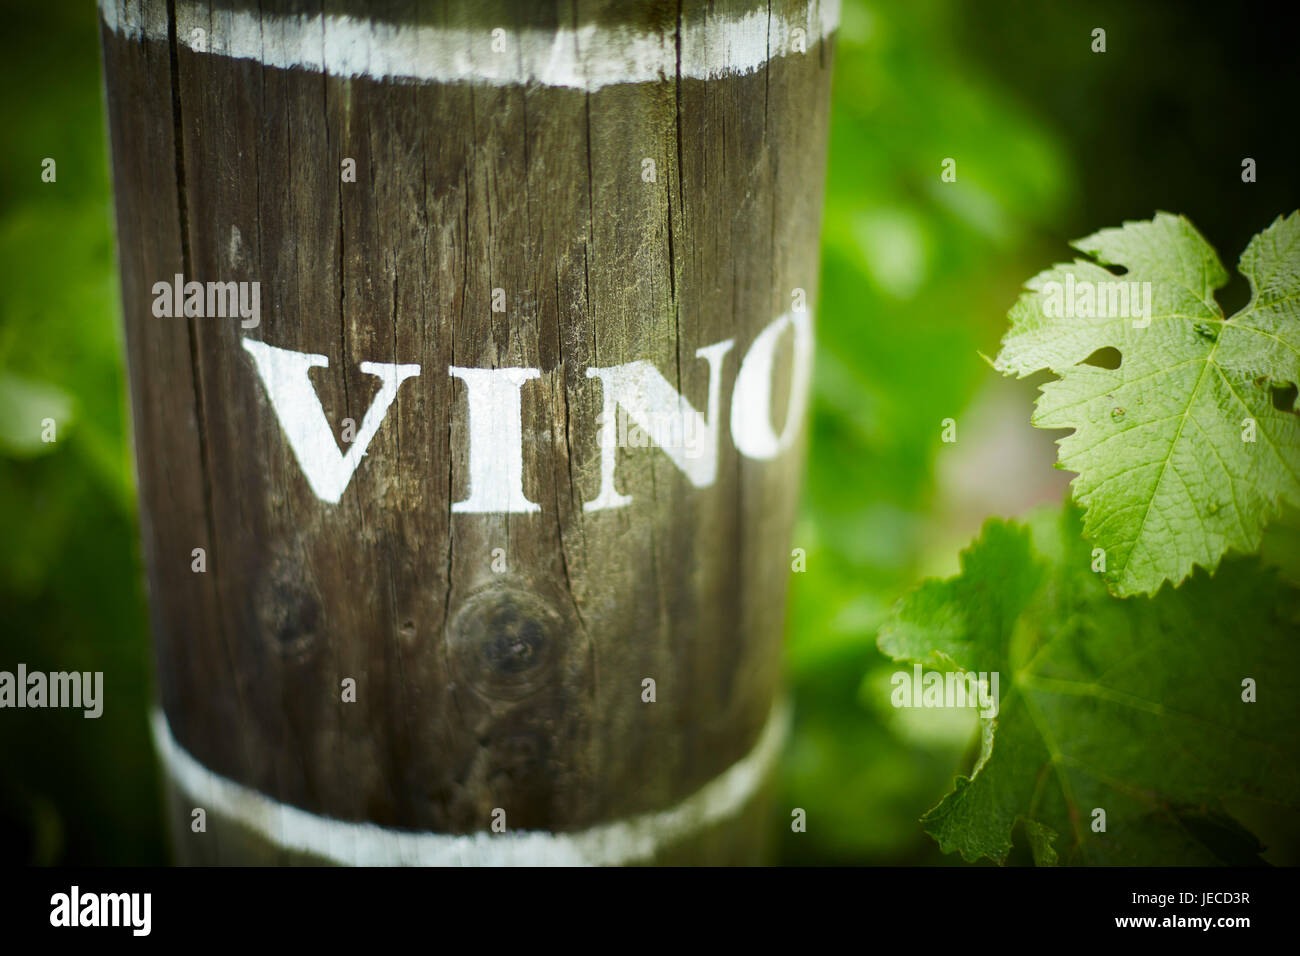 Vino end row vine markings - Stock Image